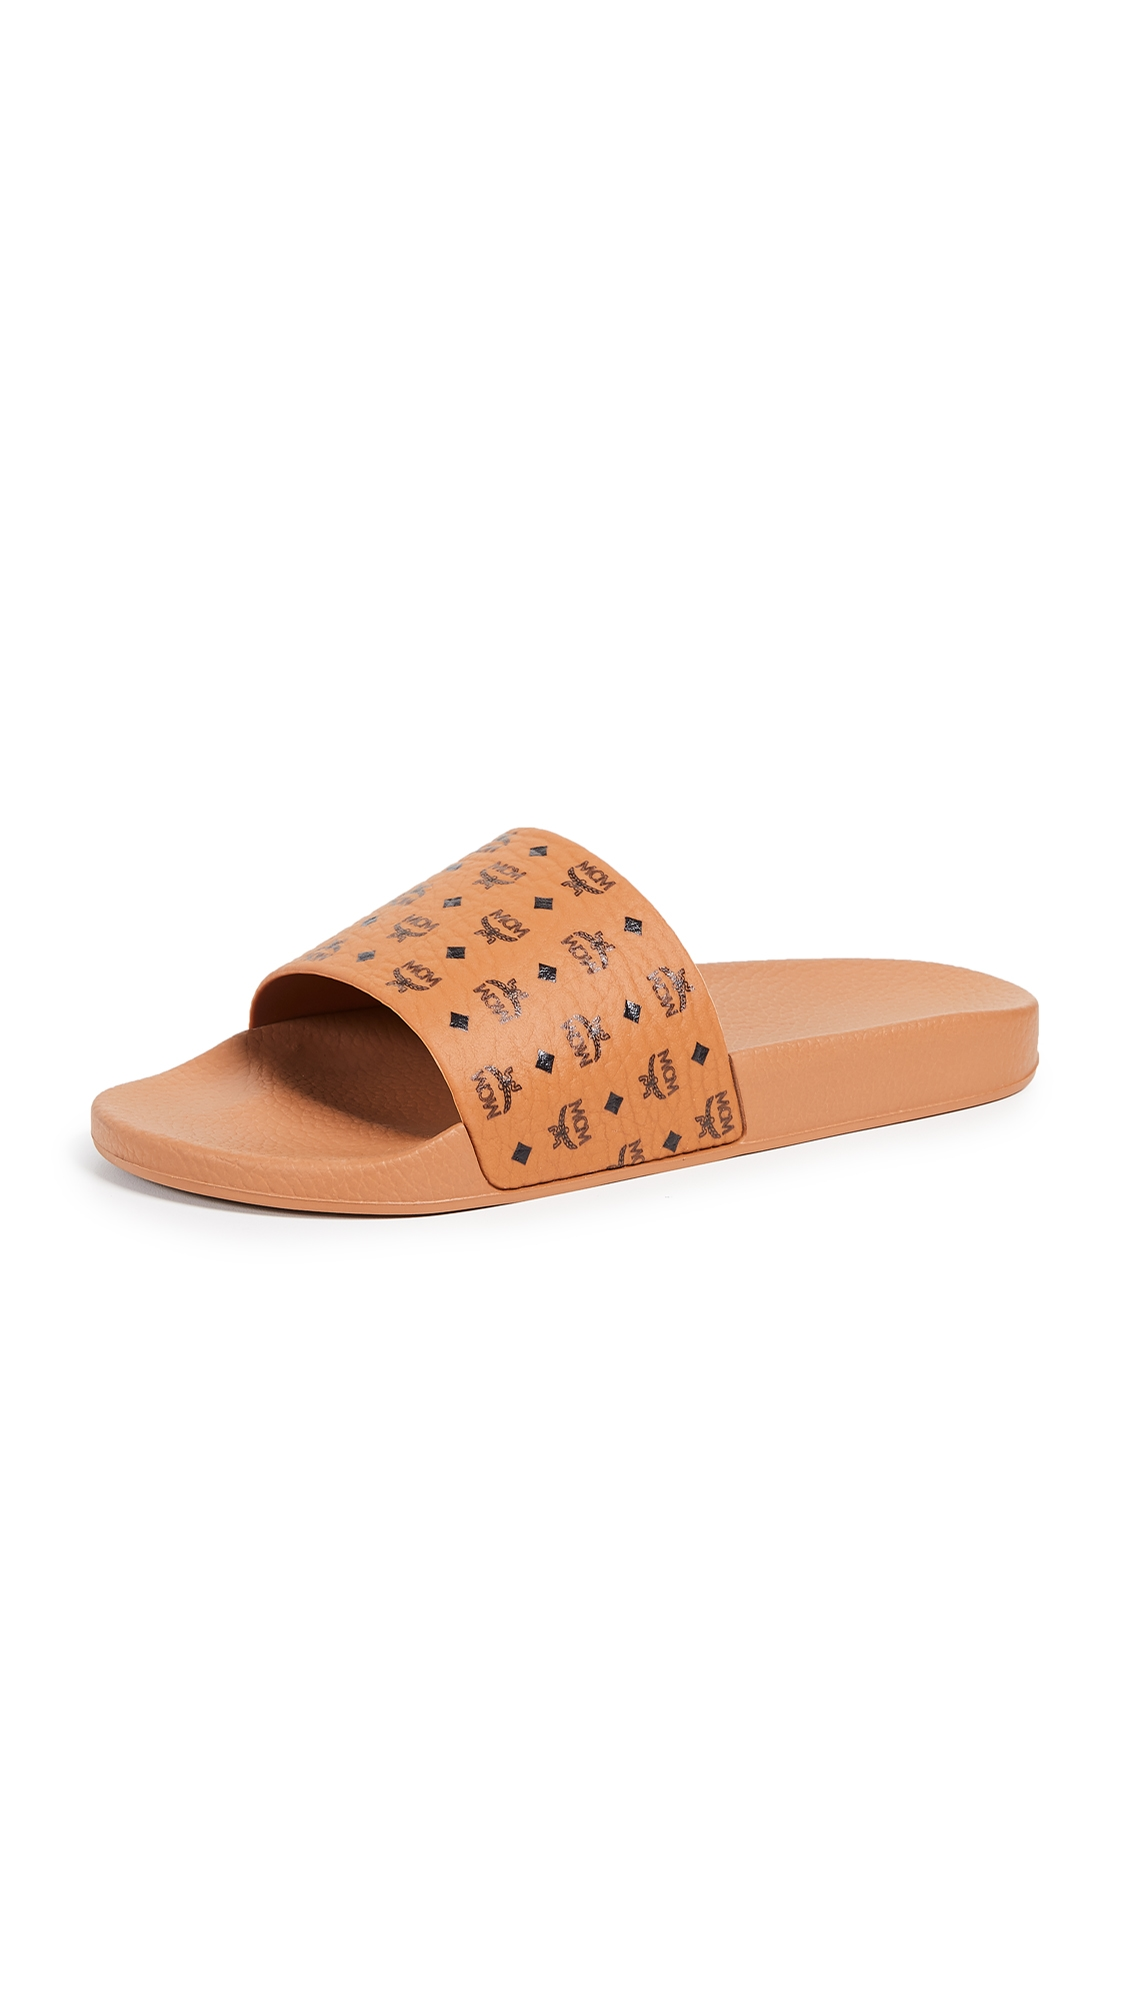 Mcm Slippers LOGO GROUP M. SLIDES